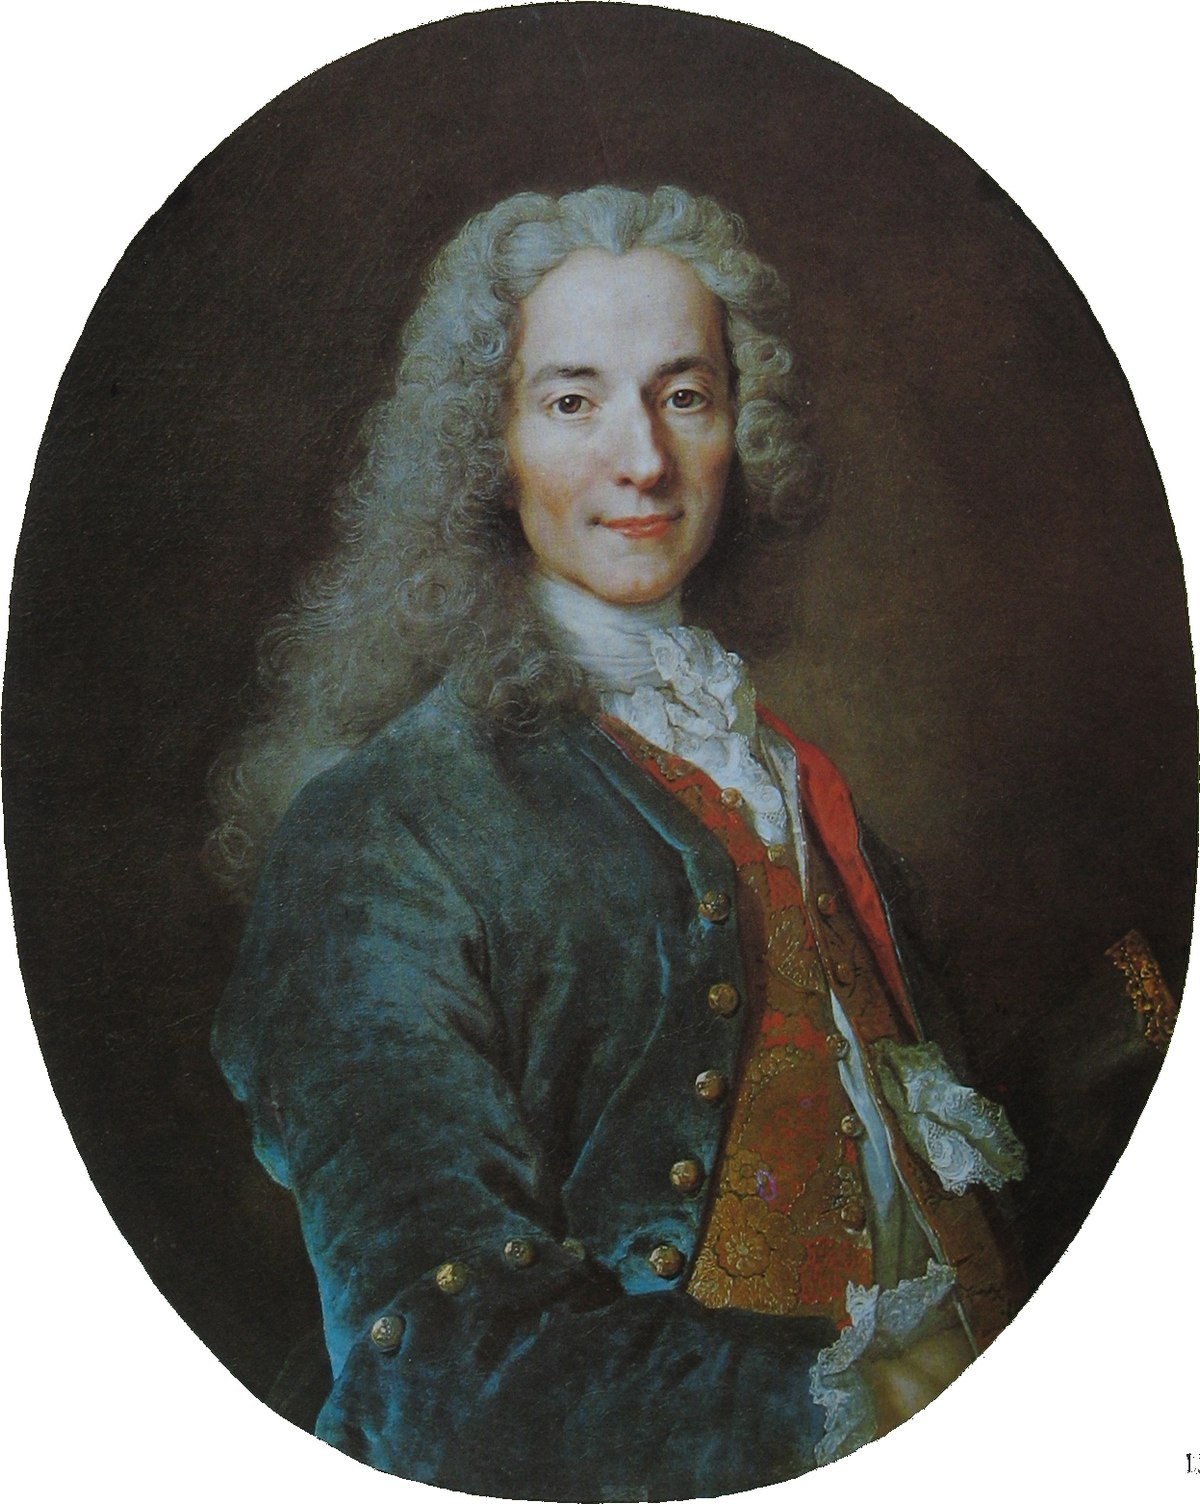 voltaire writings Candide - voltaire's writing style, free study guides and book notes including comprehensive chapter analysis, complete summary analysis, author biography information.